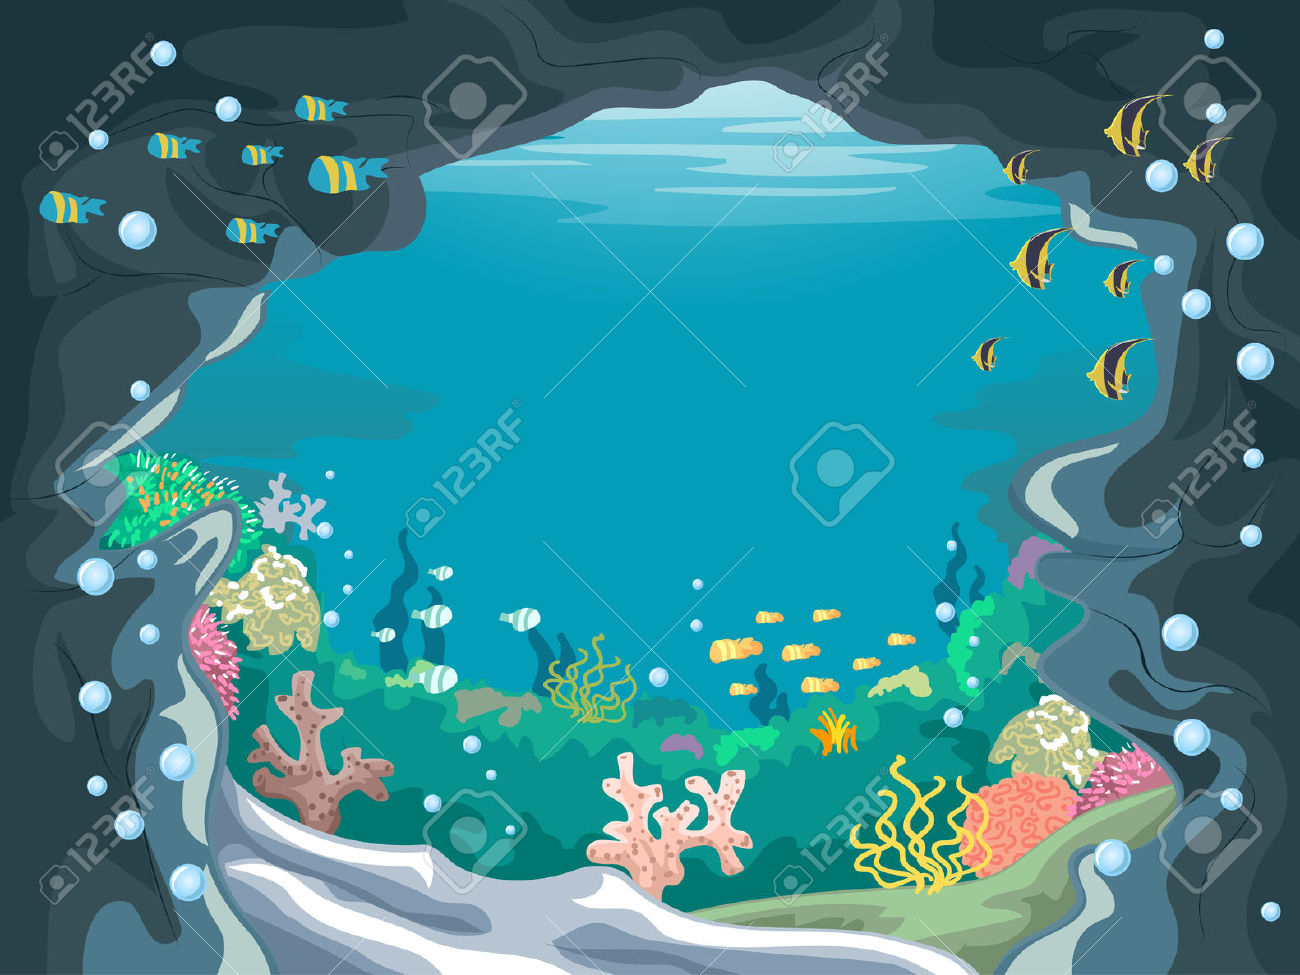 Water clipground underwater. Cave clipart jungle cave